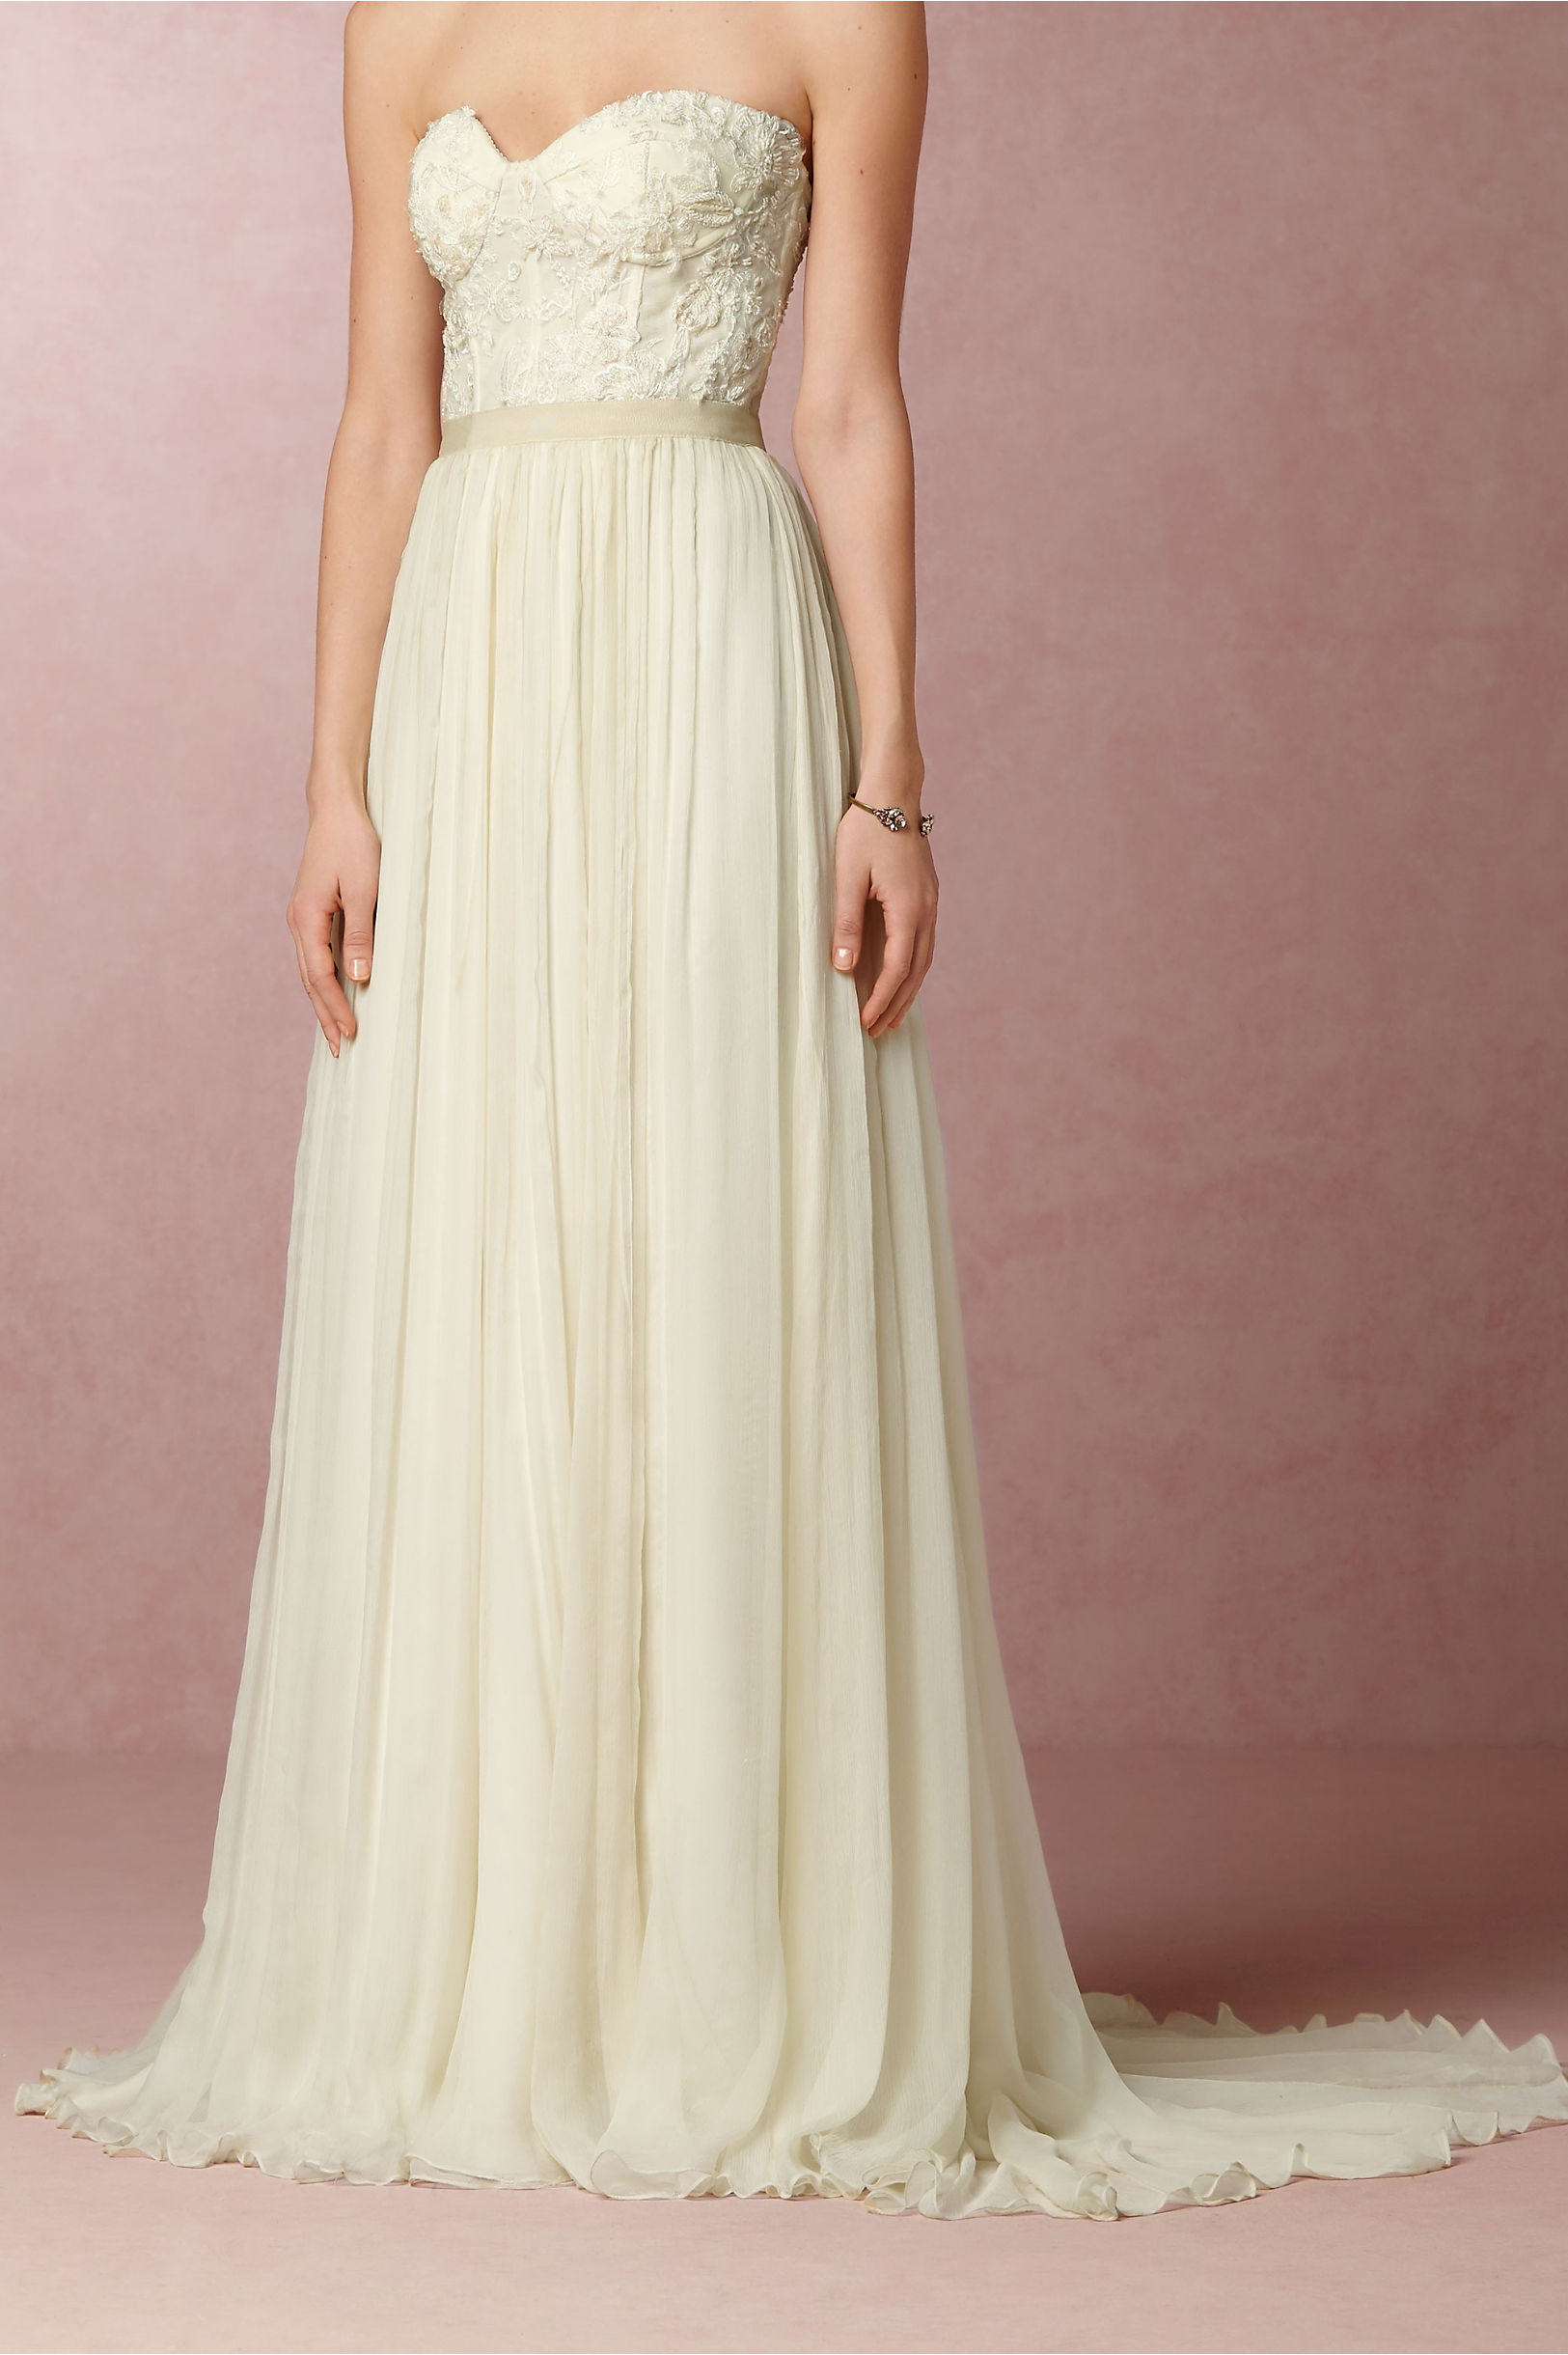 Grace Skirt in Sale | BHLDN